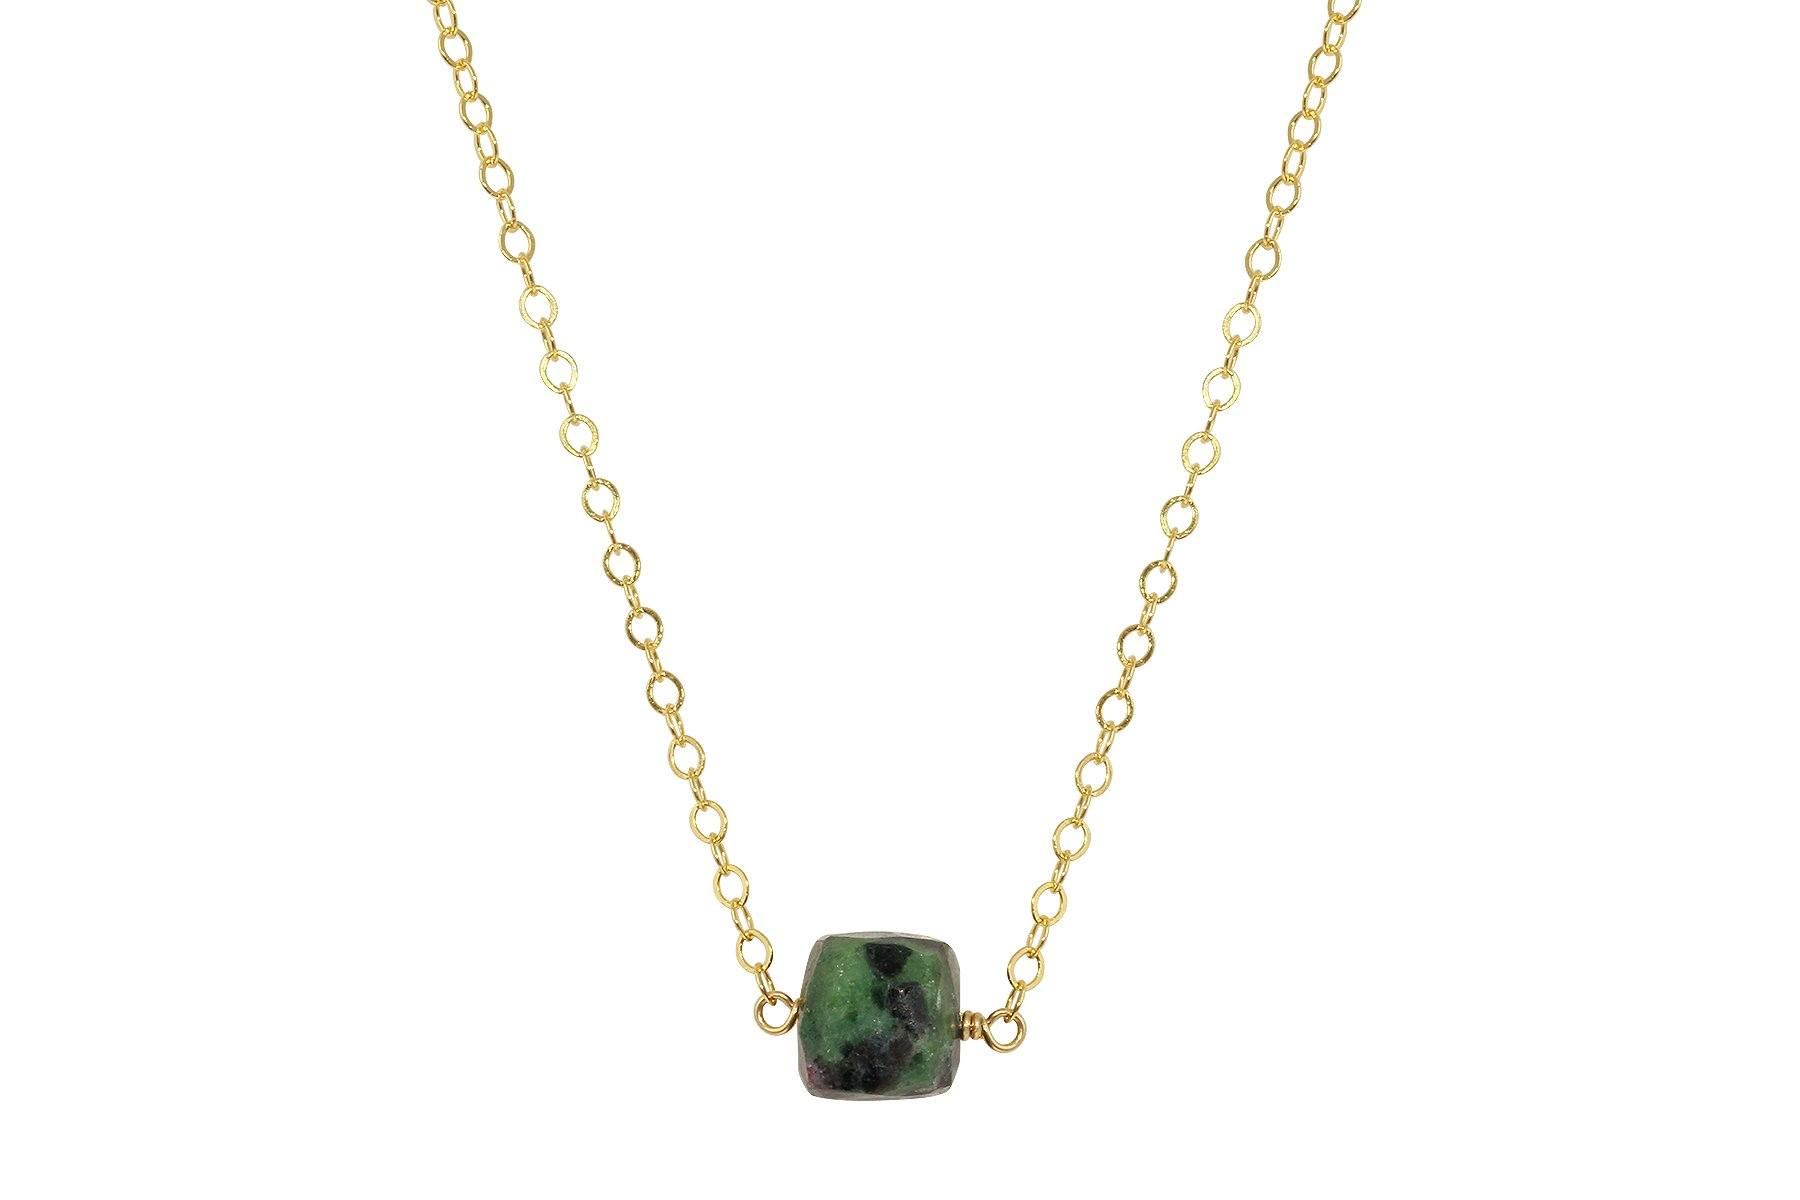 Ruby in Zoisite cube little rock necklace - Amanda K Lockrow